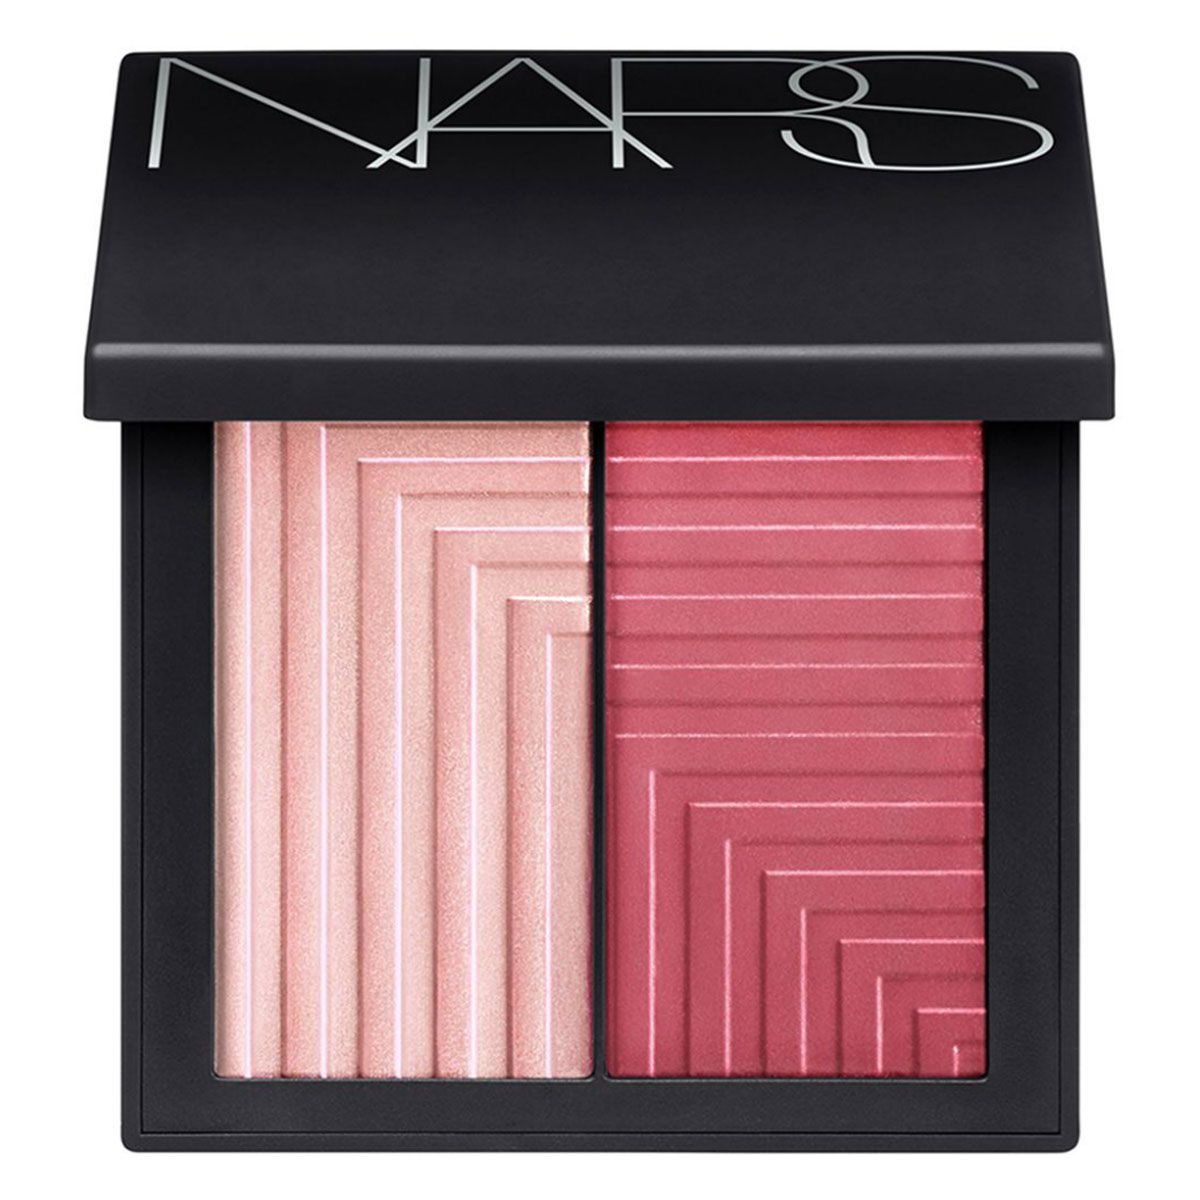 """Warm up cheeks with the darker shade, then use the pink champagne one to highlight all over.   <em>NARS Dual-Intensity Blush in Adoration, $45, <a target=""""_blank"""" href=""""http://www.sephora.com/dual-intensity-blush-P393659?skuId=1678135&om_mmc=ppc-GG&mkwid=Pp9XtJtB&pcrid=49113163479&pdv=c&site=us_search&country_switch=us&lang=en&gclid=CLD4-Mvn8cUCFdQTHwodV0EAGA"""">sephora.com</a>.</em>"""